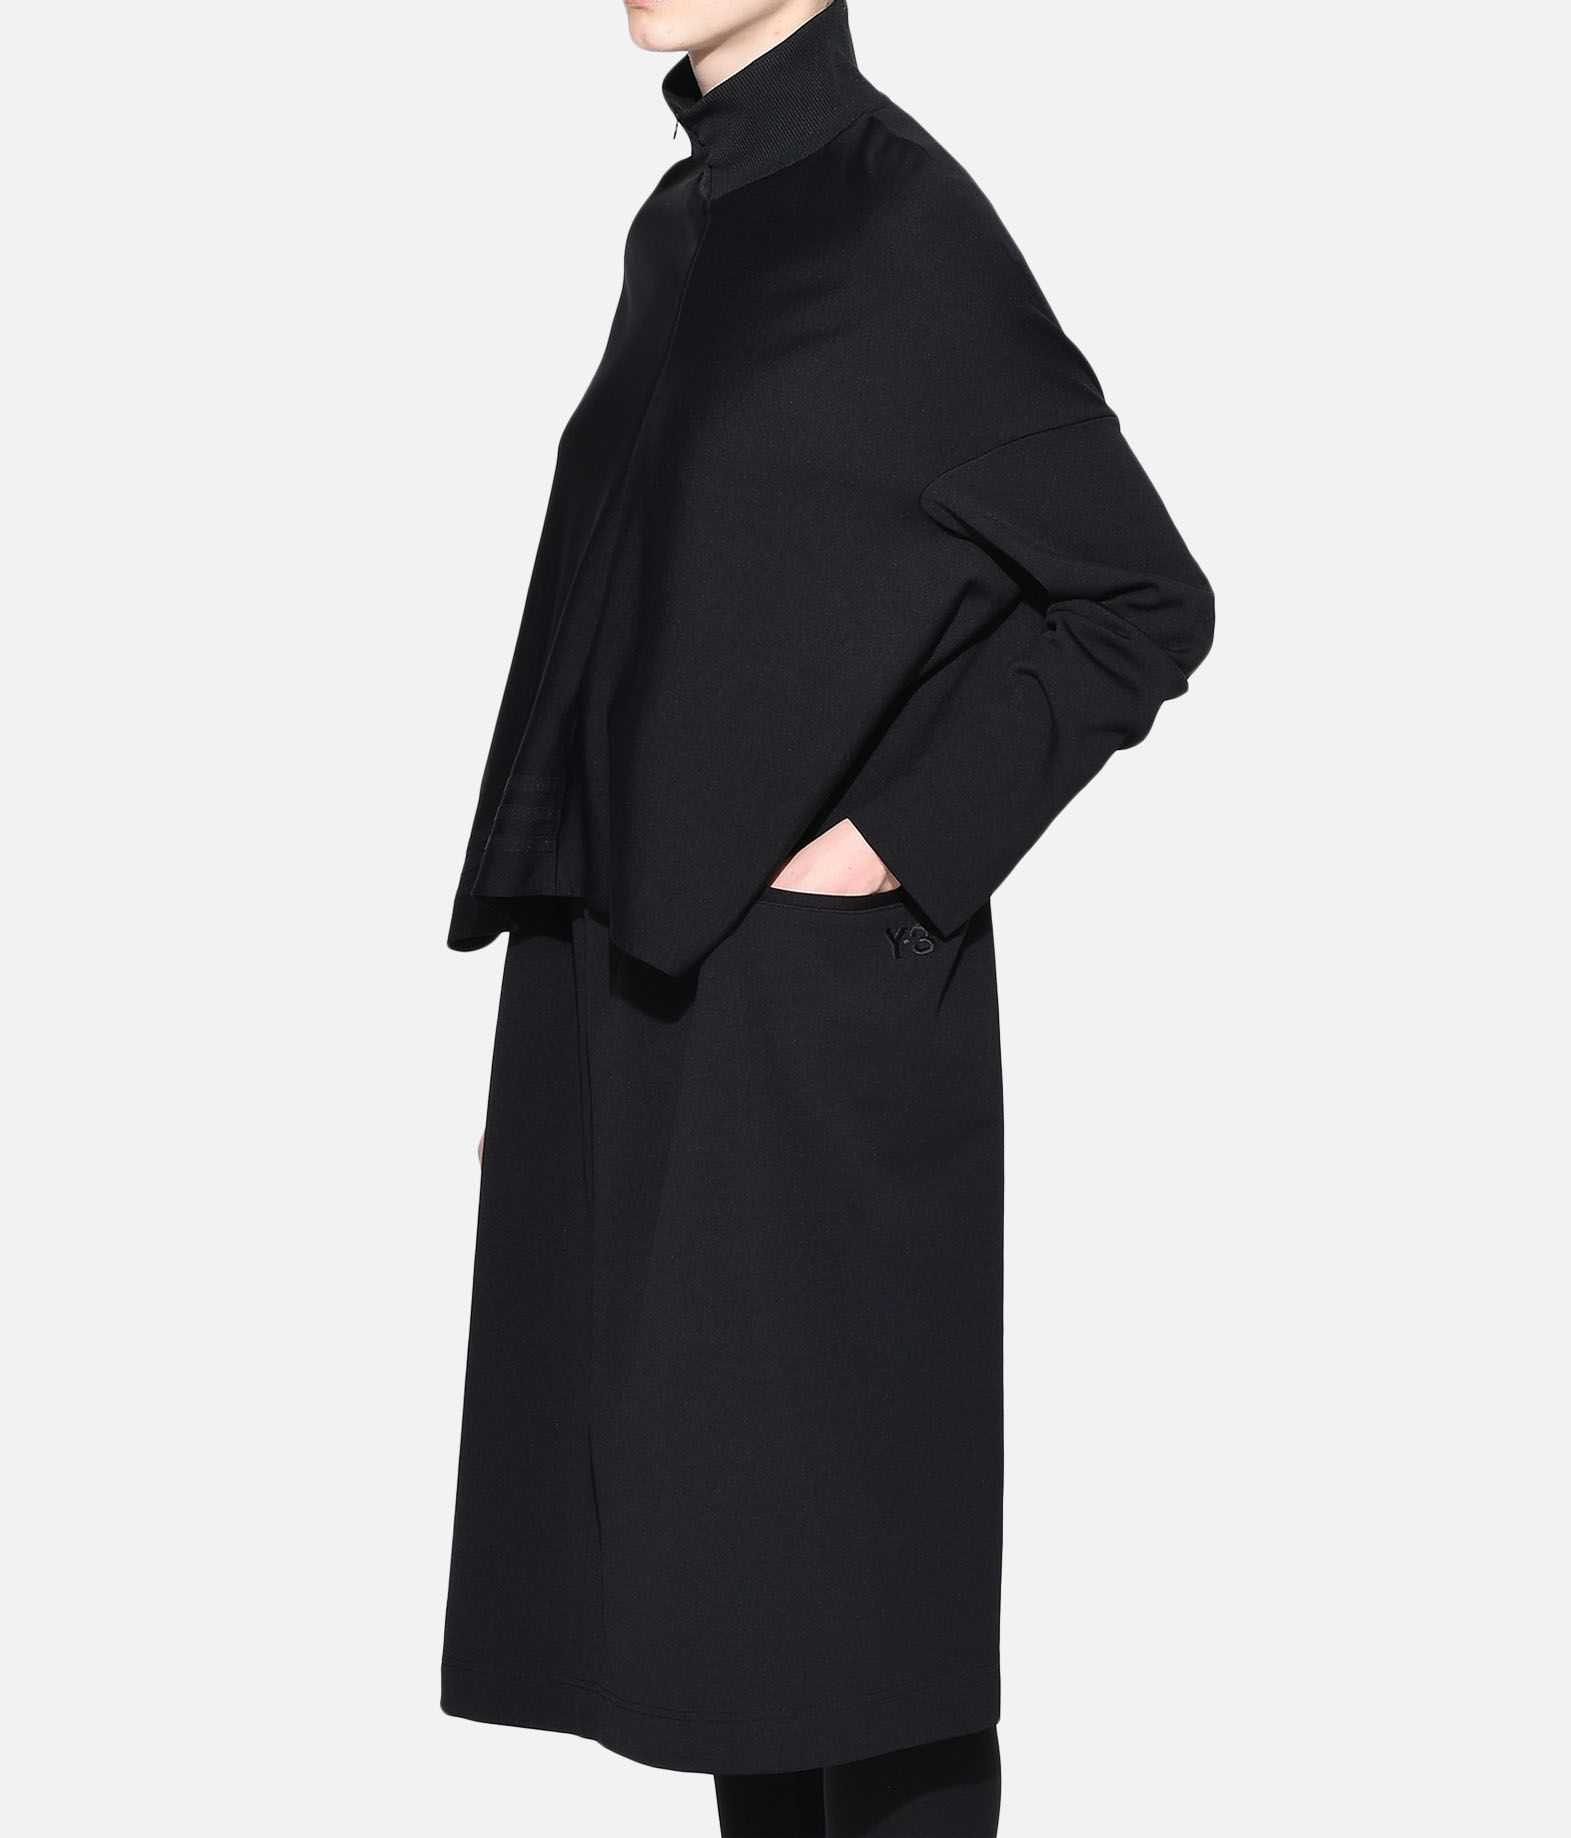 Y-3 Y-3 Matte Track Dress 3/4 length dress Woman e